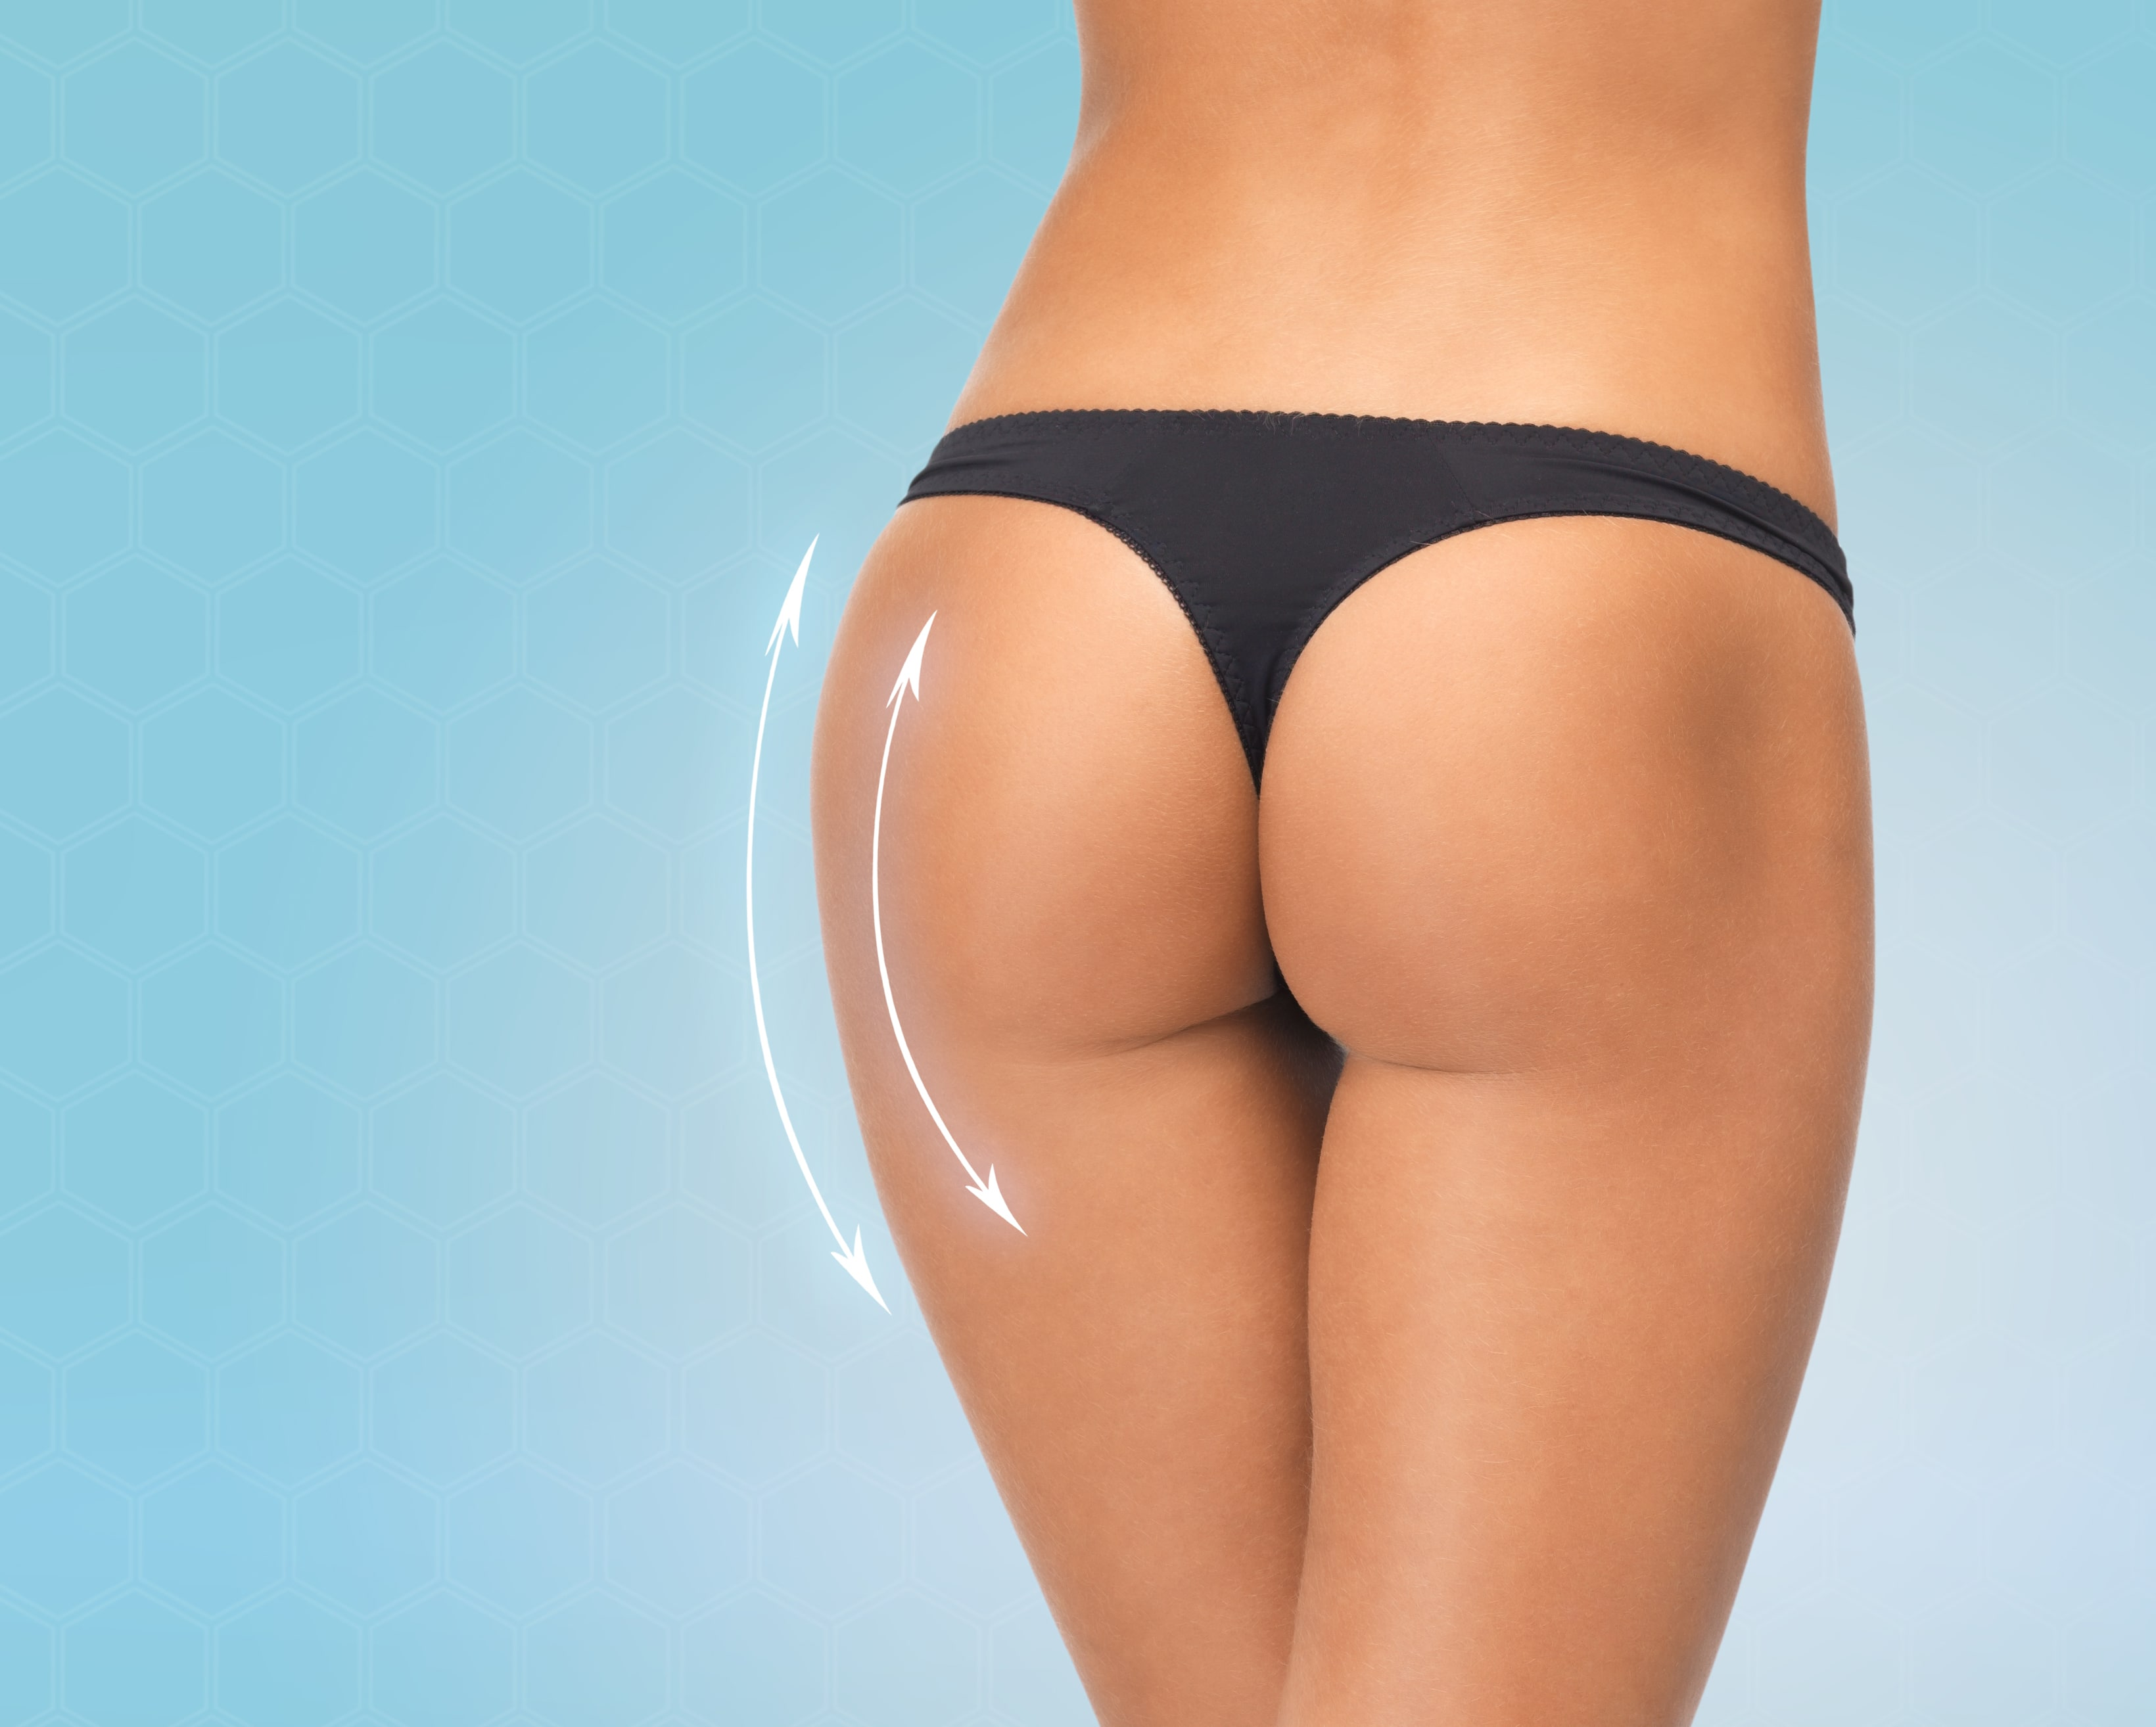 liposuction-min Body Contouring In Scottsdale